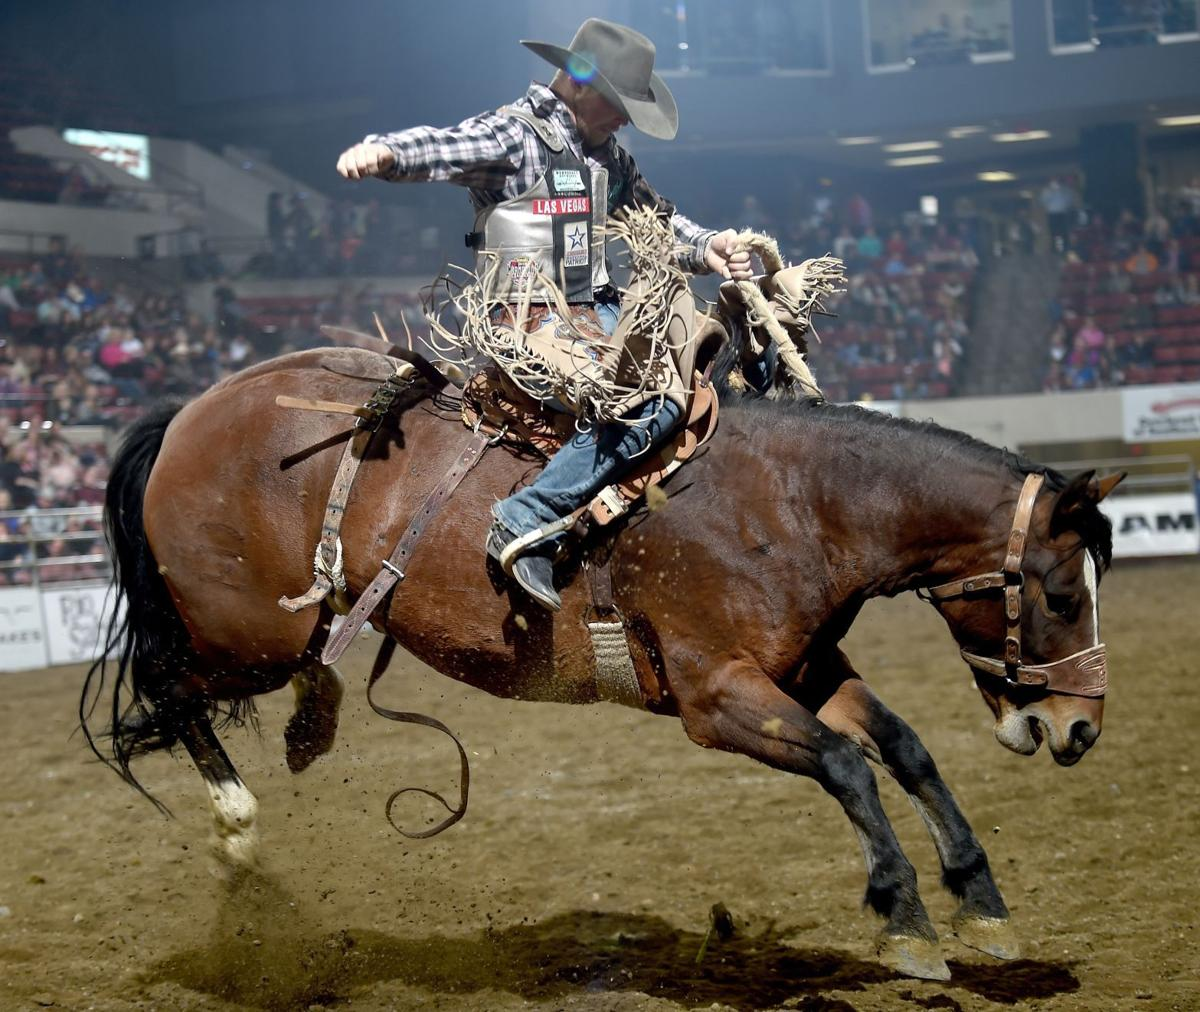 Jesse Wright Opens Nile With 88 Point Saddle Bronc Ride